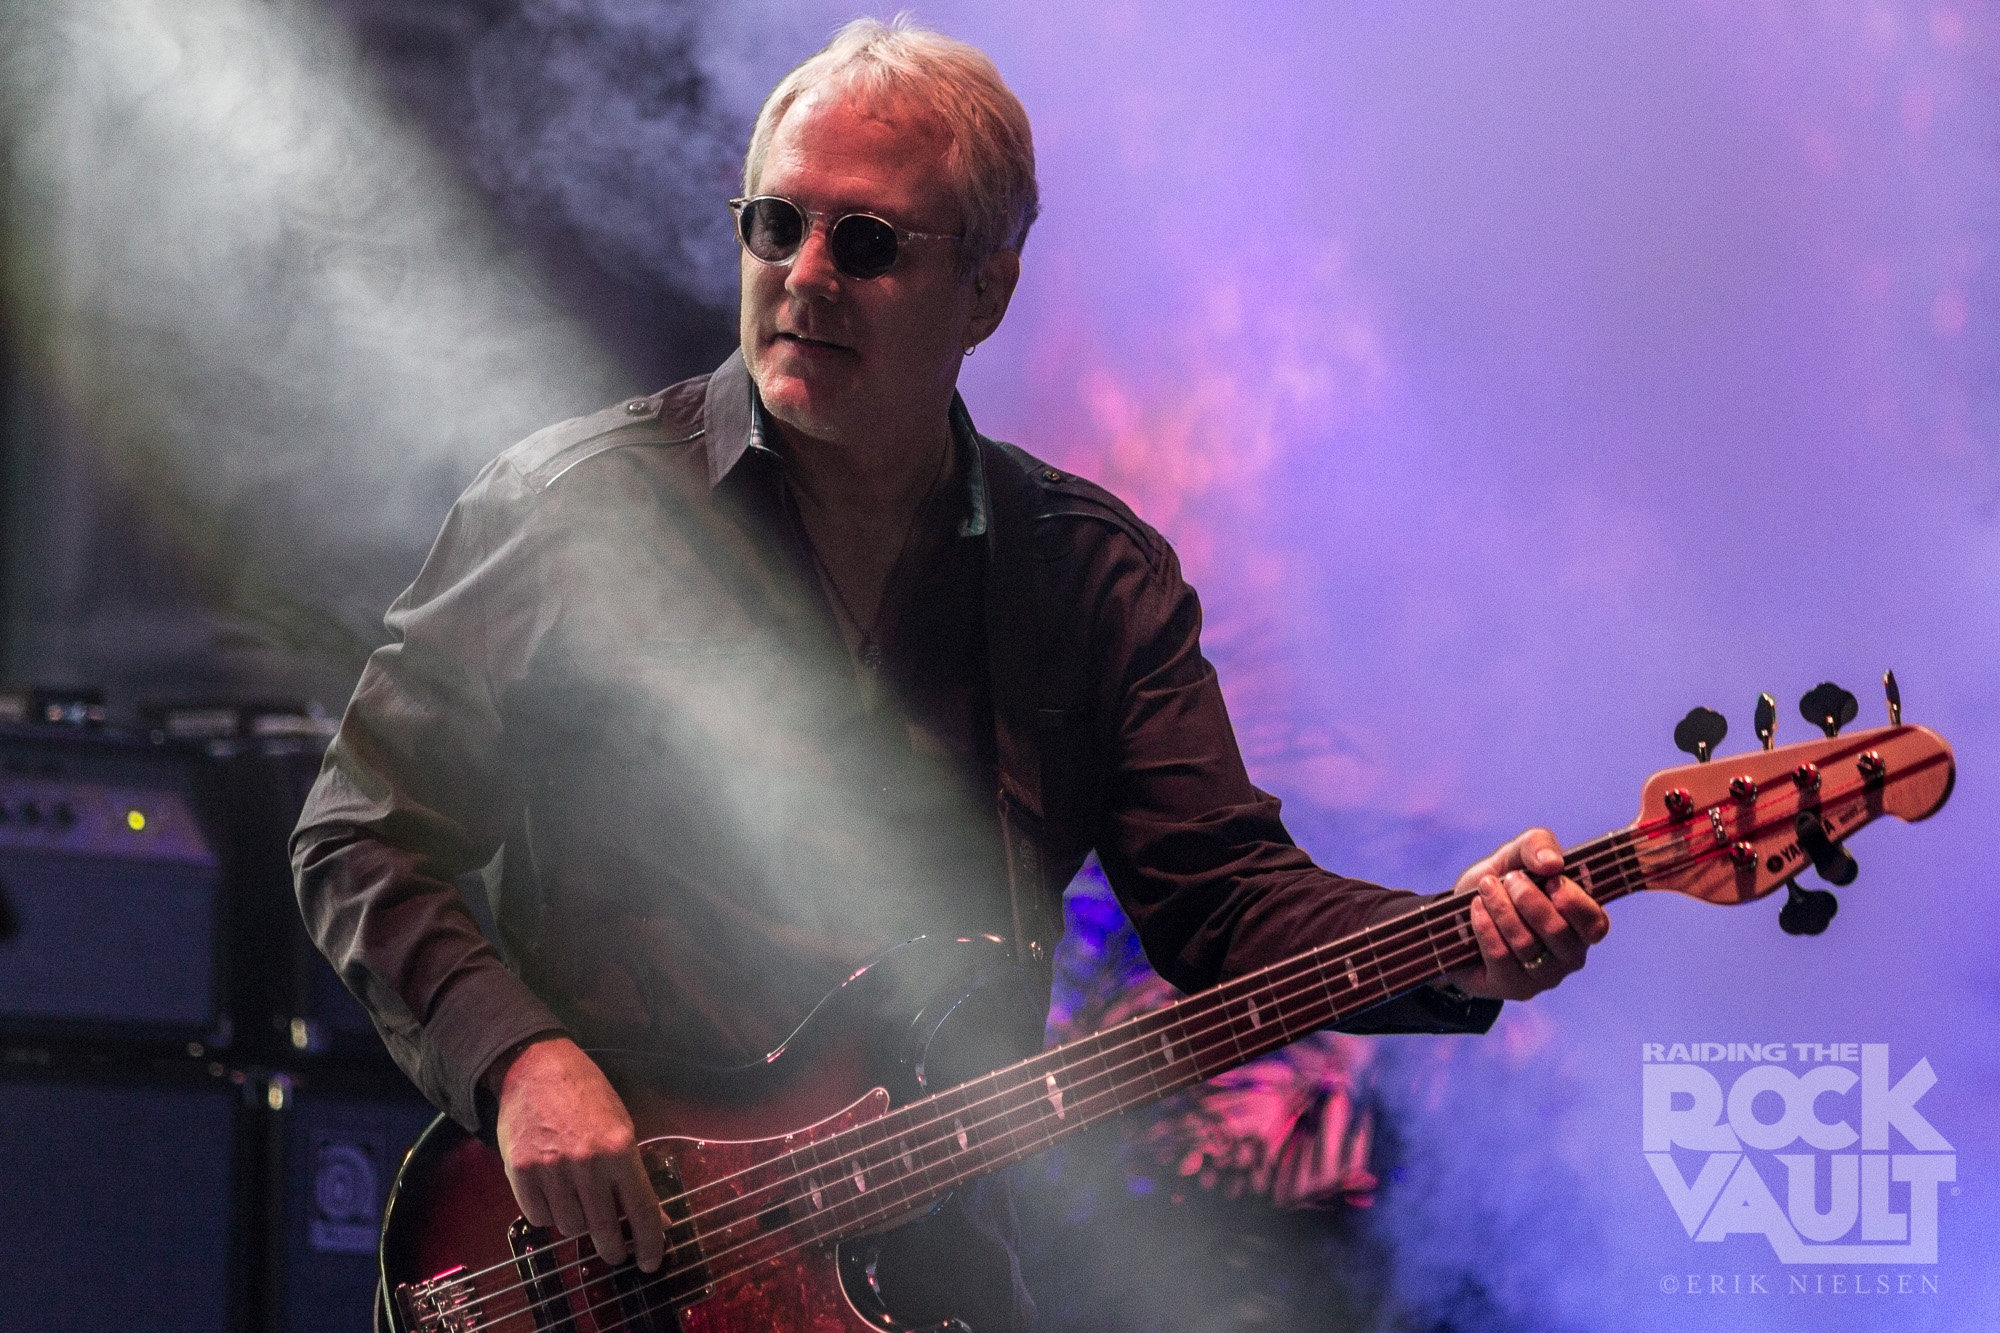 RAIDING THE ROCK VAULT Announces Addition of Bassist Hugh McDonald to Line-Up at Las Vegas Hotel & Casino